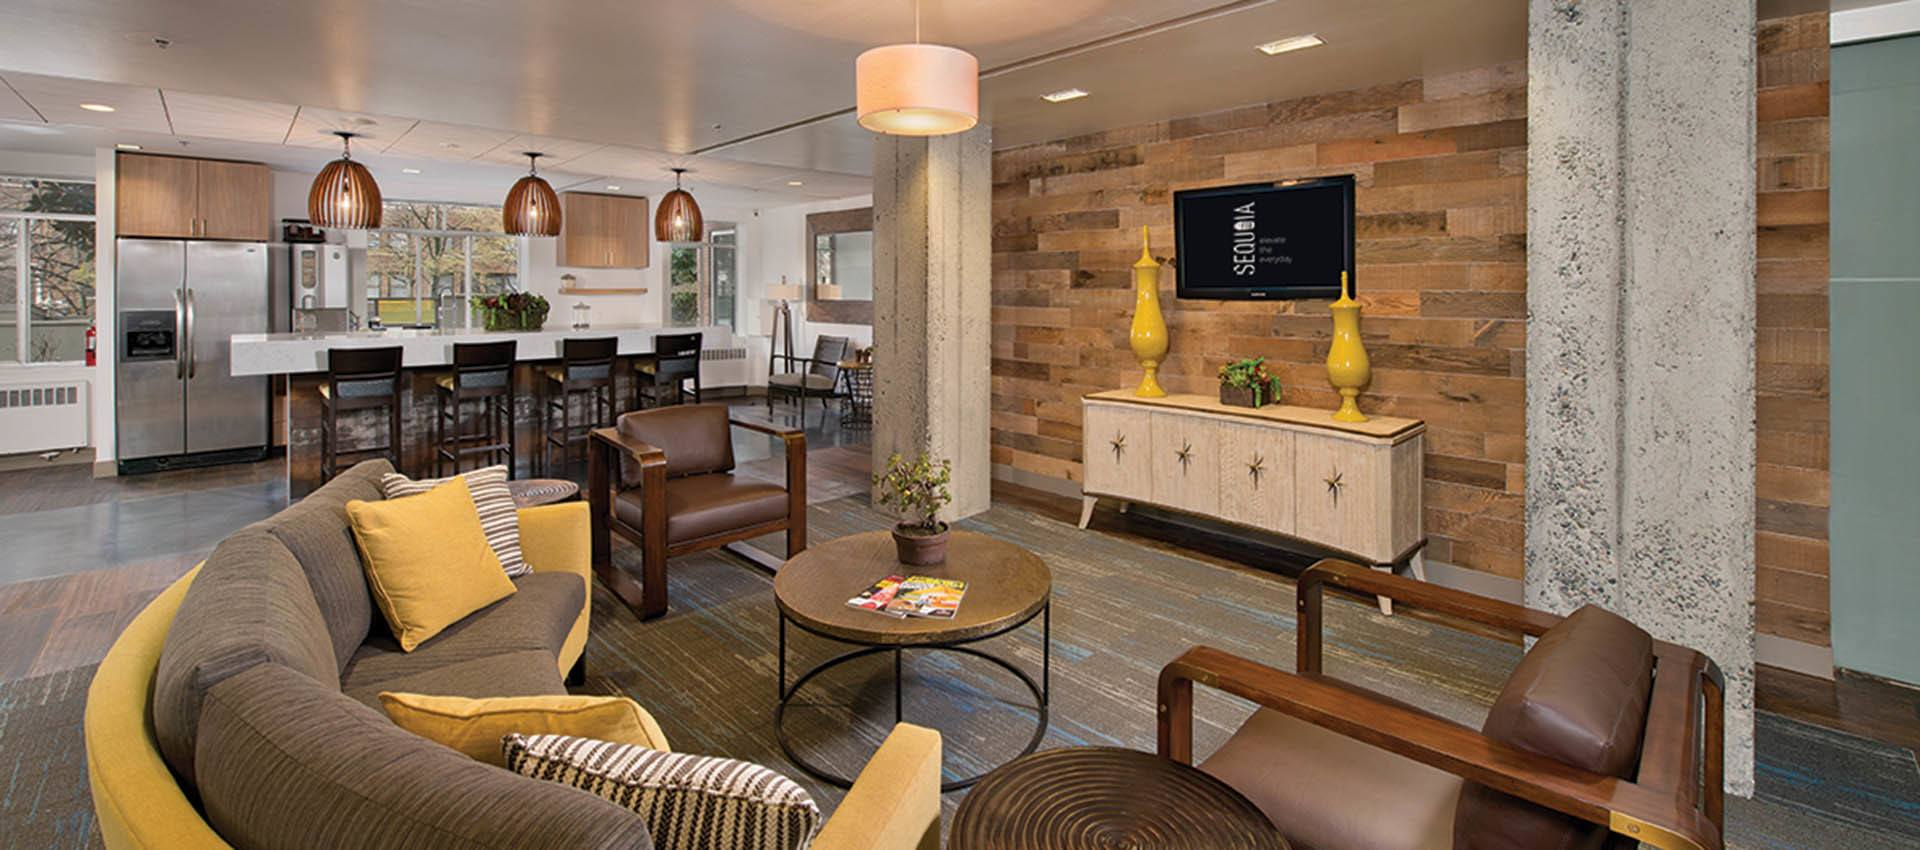 Lobby with Flat screen TV on the wall at The Mill at First Hill in Seattle , Washington